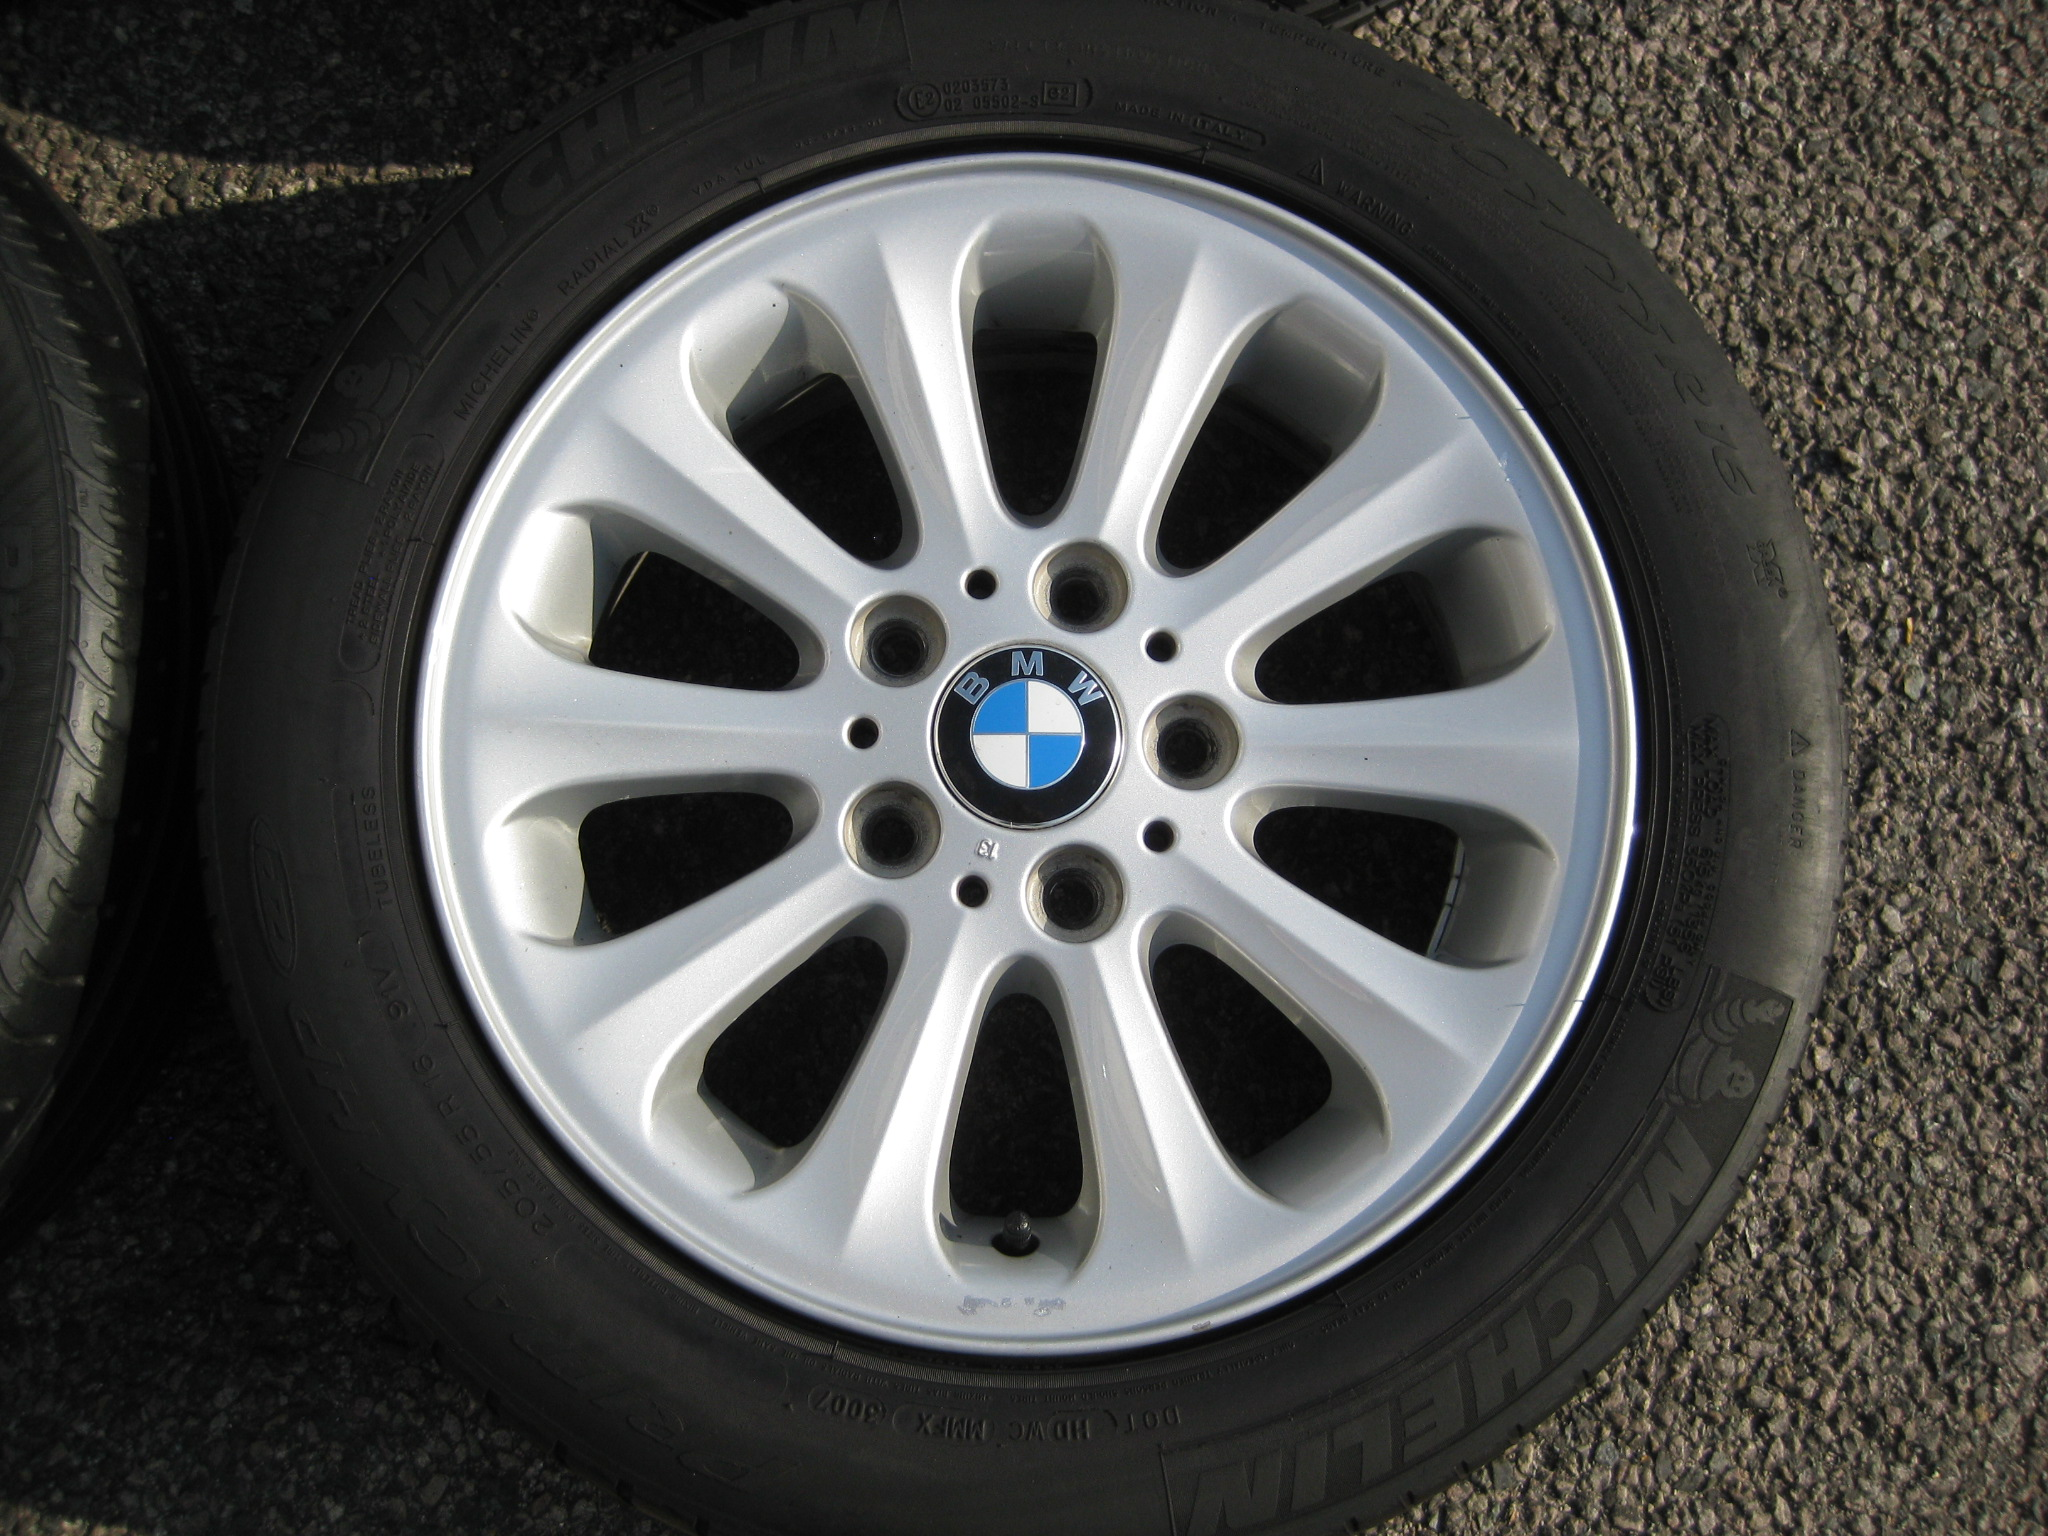 "USED 16"" GENUINE STYLE 139 RADIAL SPOKE ALLOY WHEELS, CLEAN INC GOOD RUNFLAT TYRES"